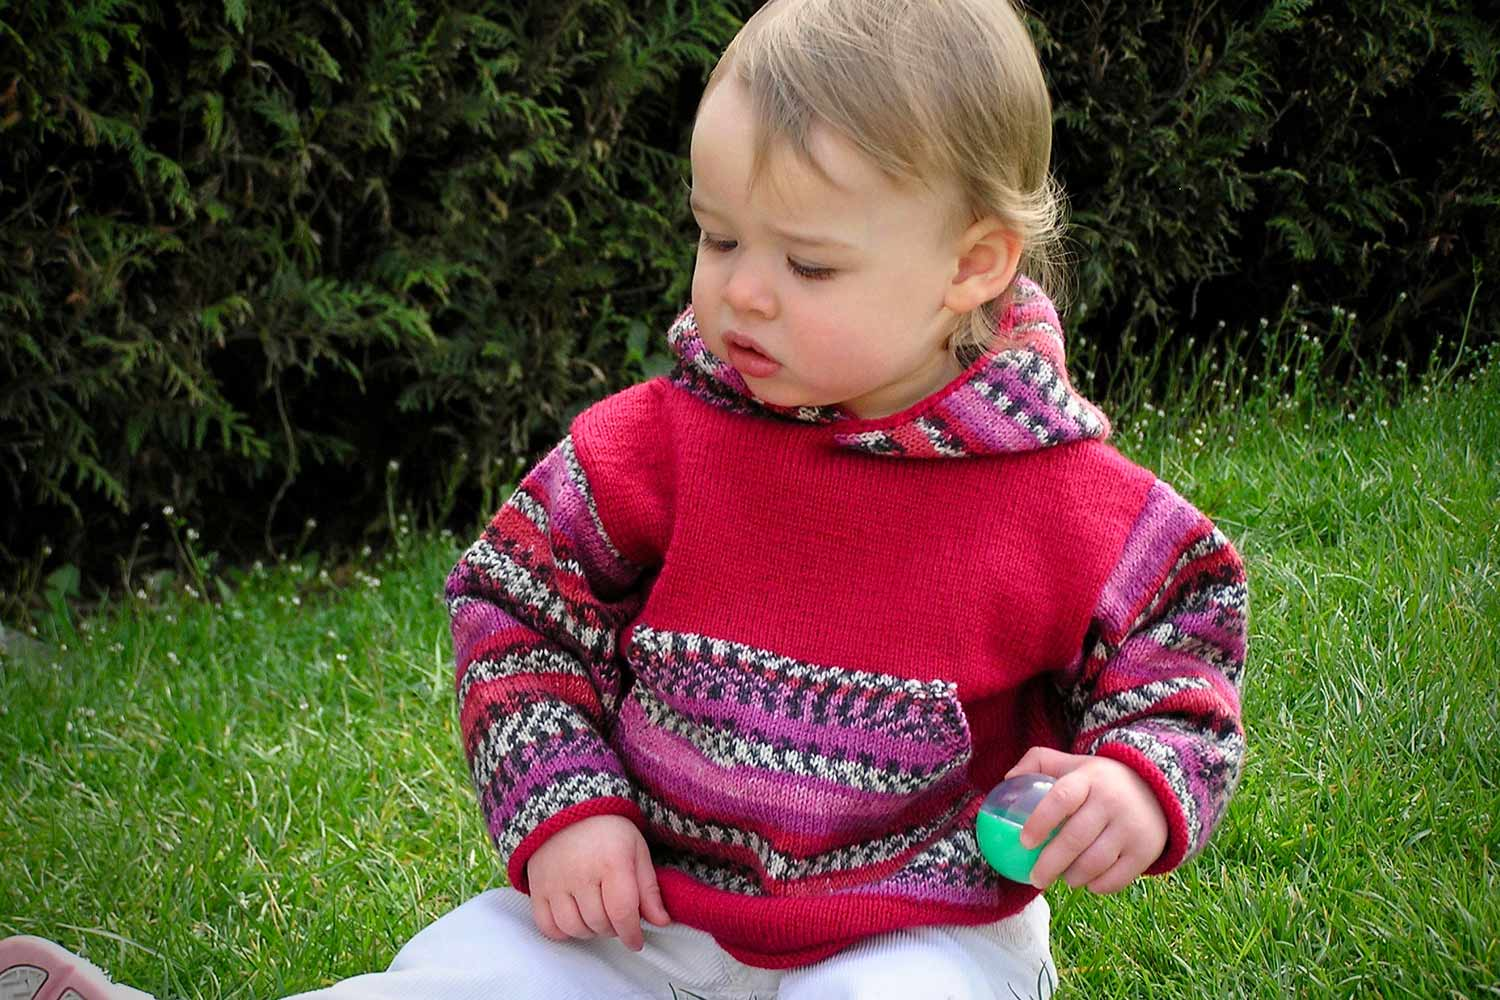 Baby seated on grass wearing a red pullover hoodie with sleeves, hood and kangaroo pocket worked in self-patterning yarn.